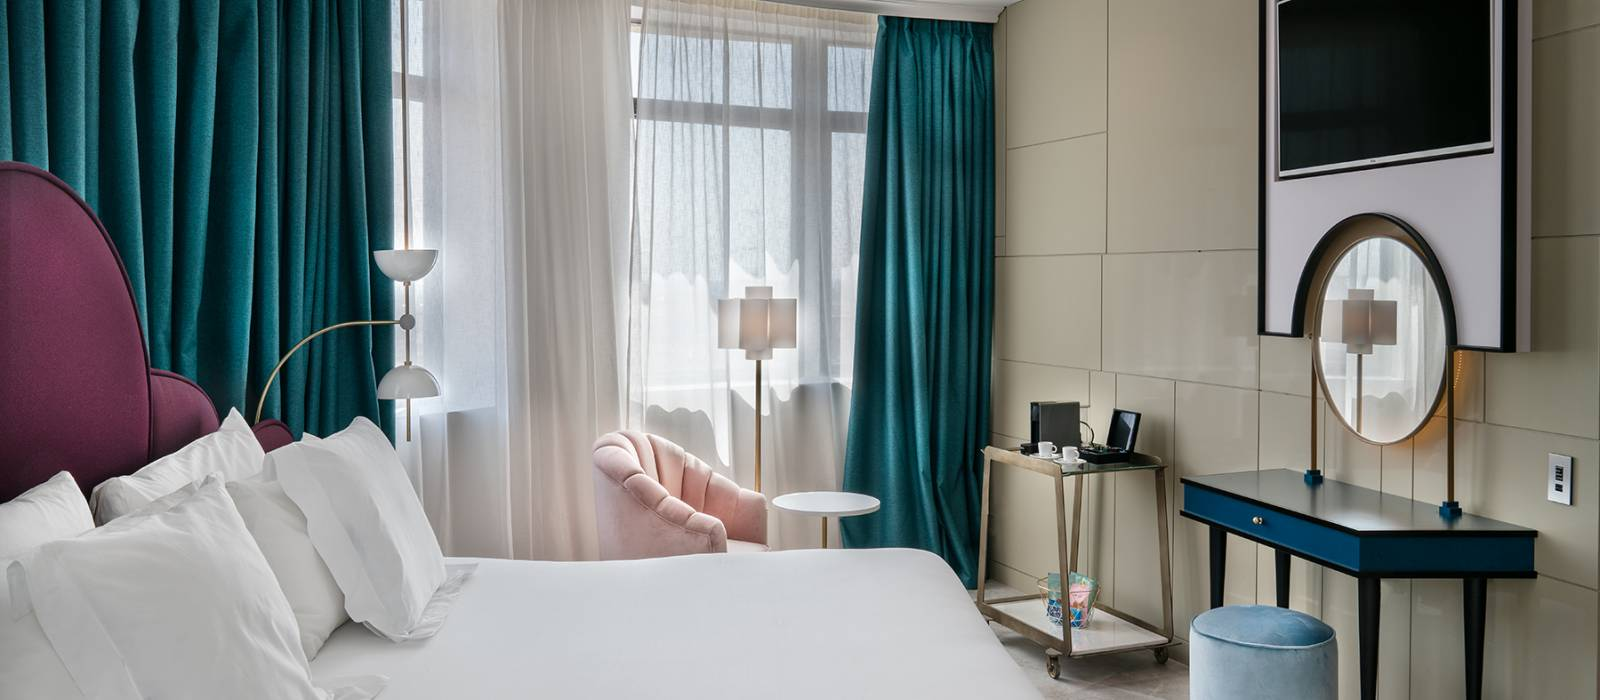 Promotions Hotel Vincci Madrid Capitol - Book now and save 10%!